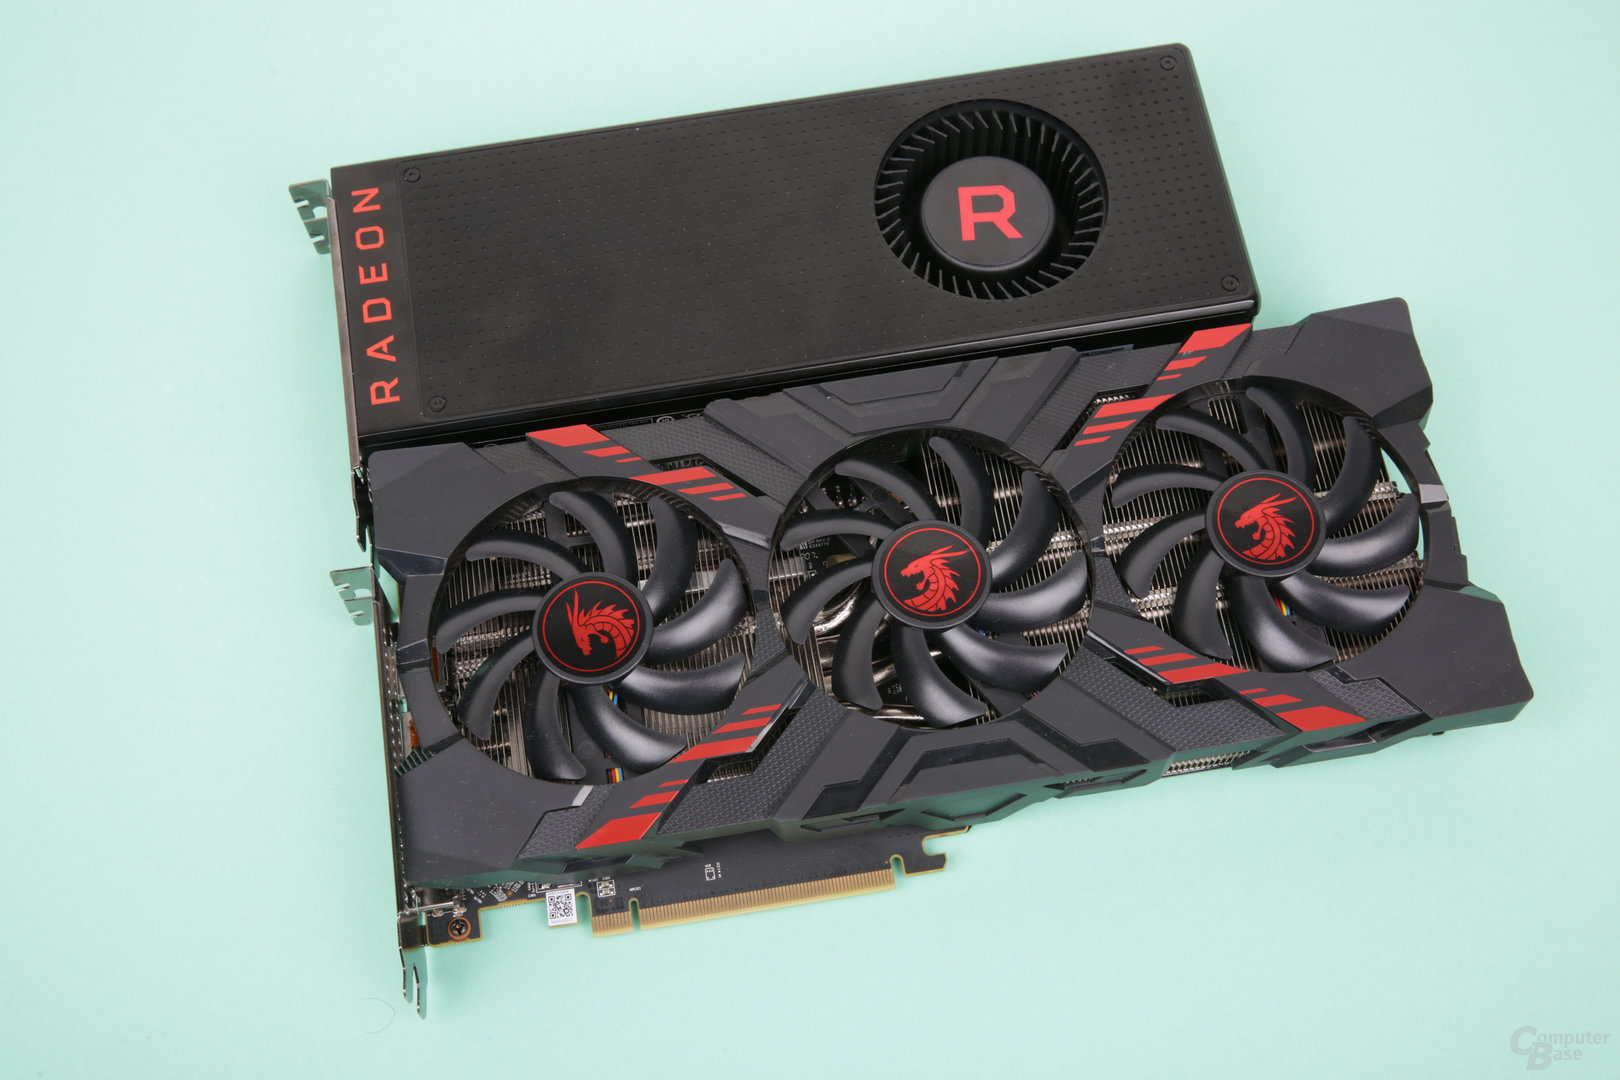 RX Vega 56 – Referenzdesign (oben) und PowerColor Red Dragon